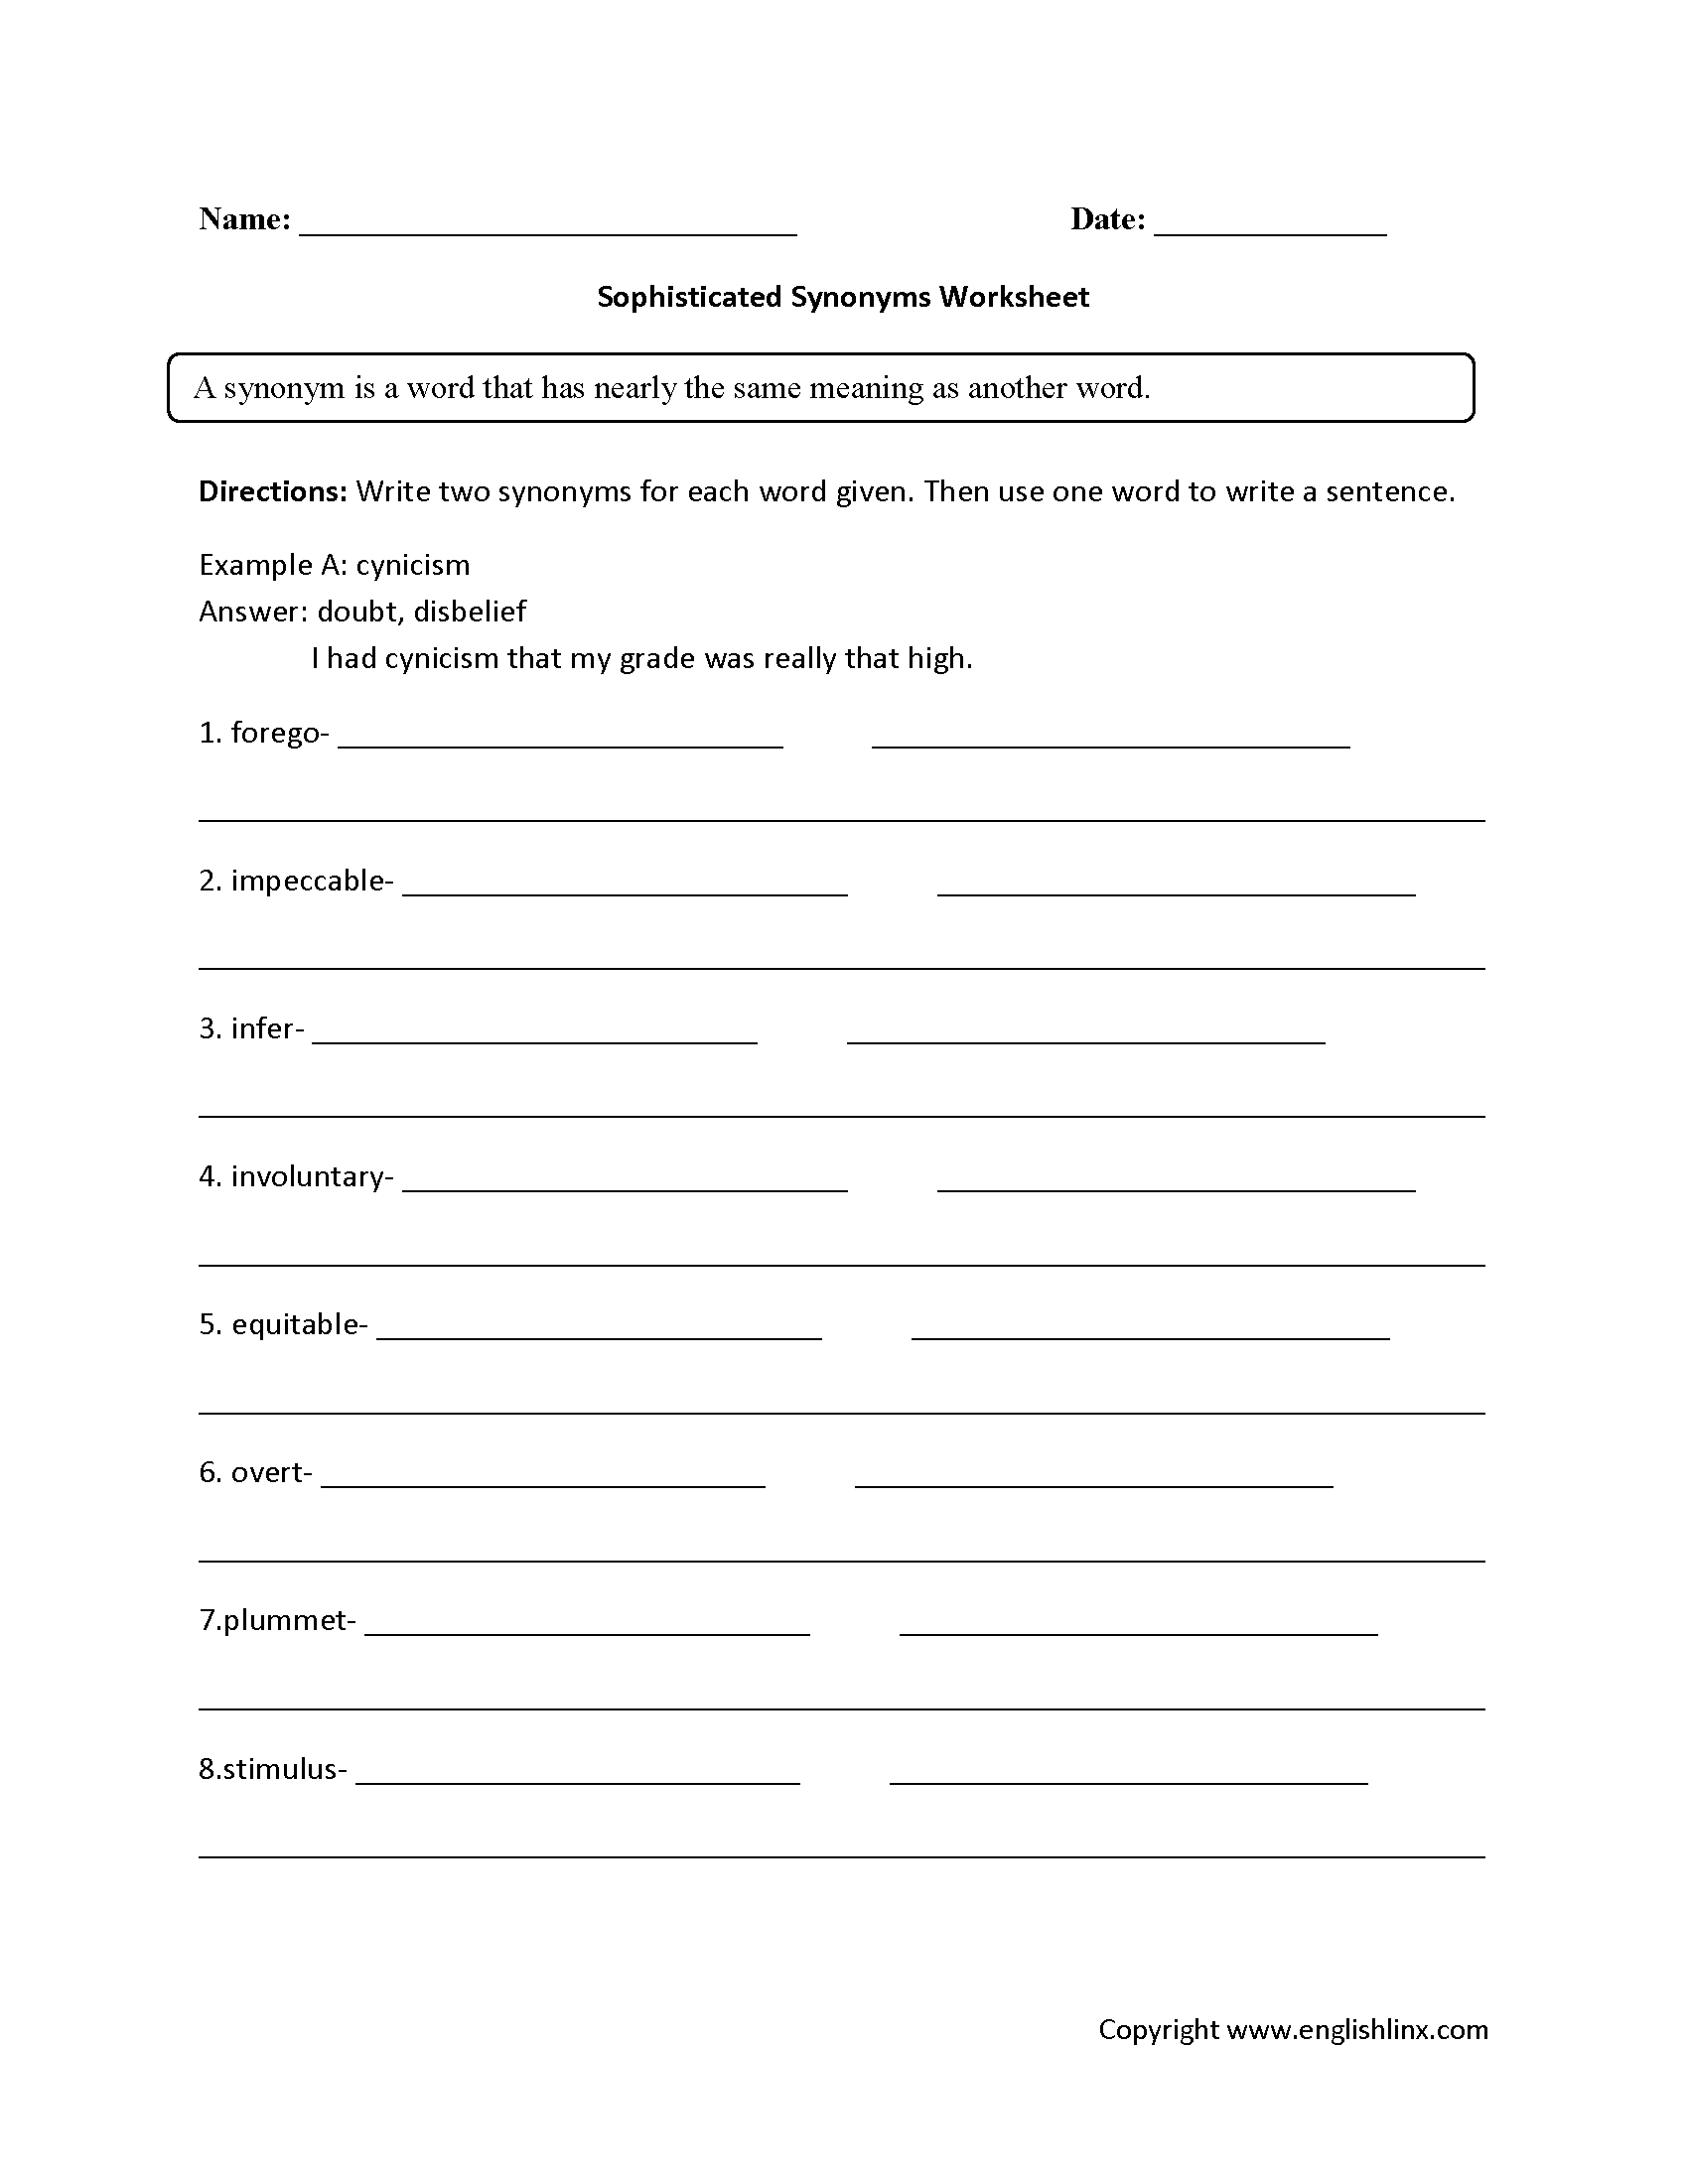 hight resolution of Sophisticated Synonyms Worksheets   Synonym worksheet